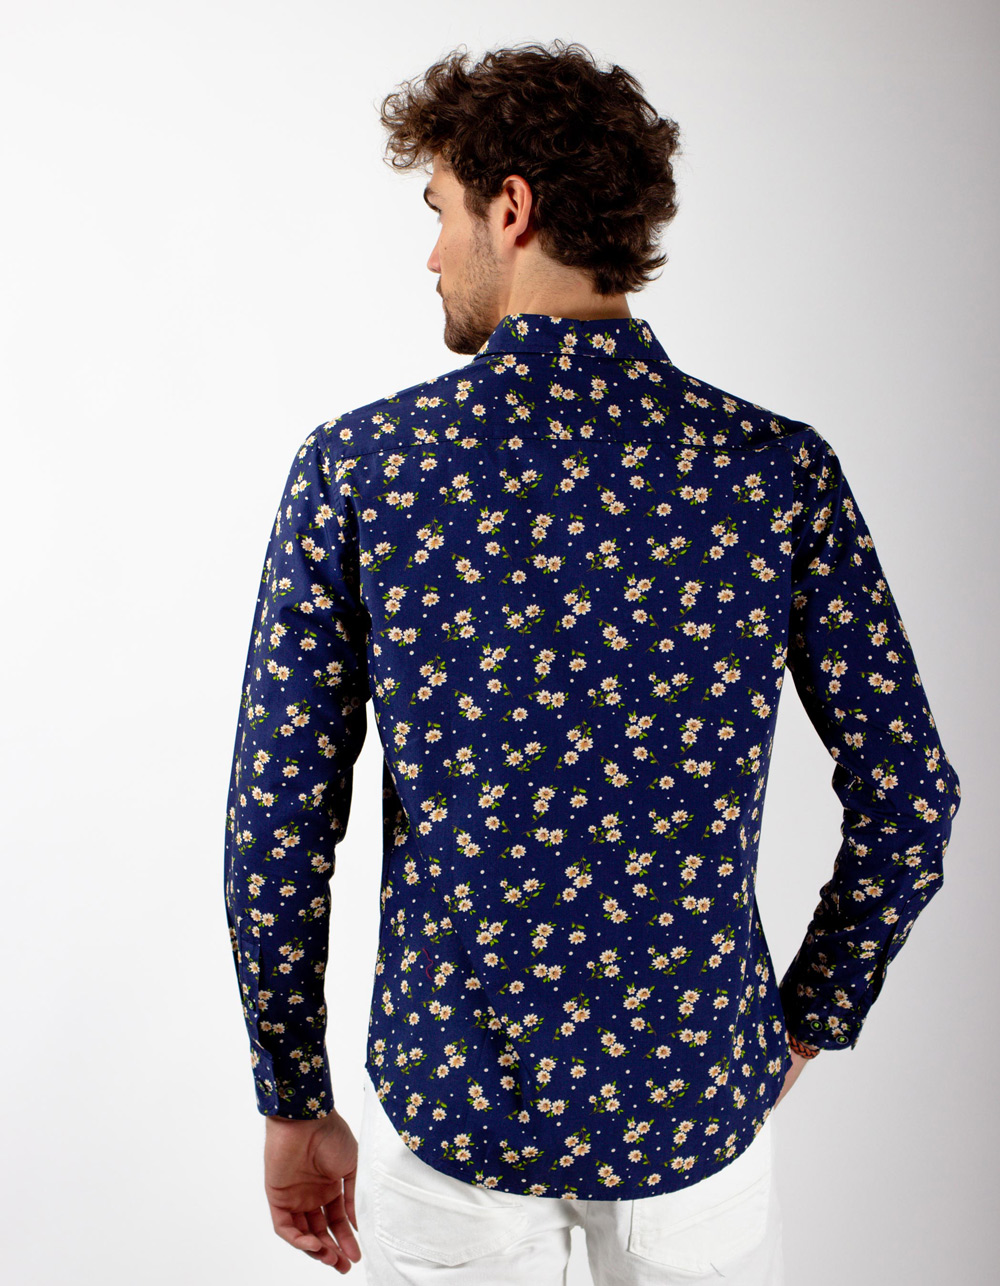 Camisa tejano oscuro y flores - Backside